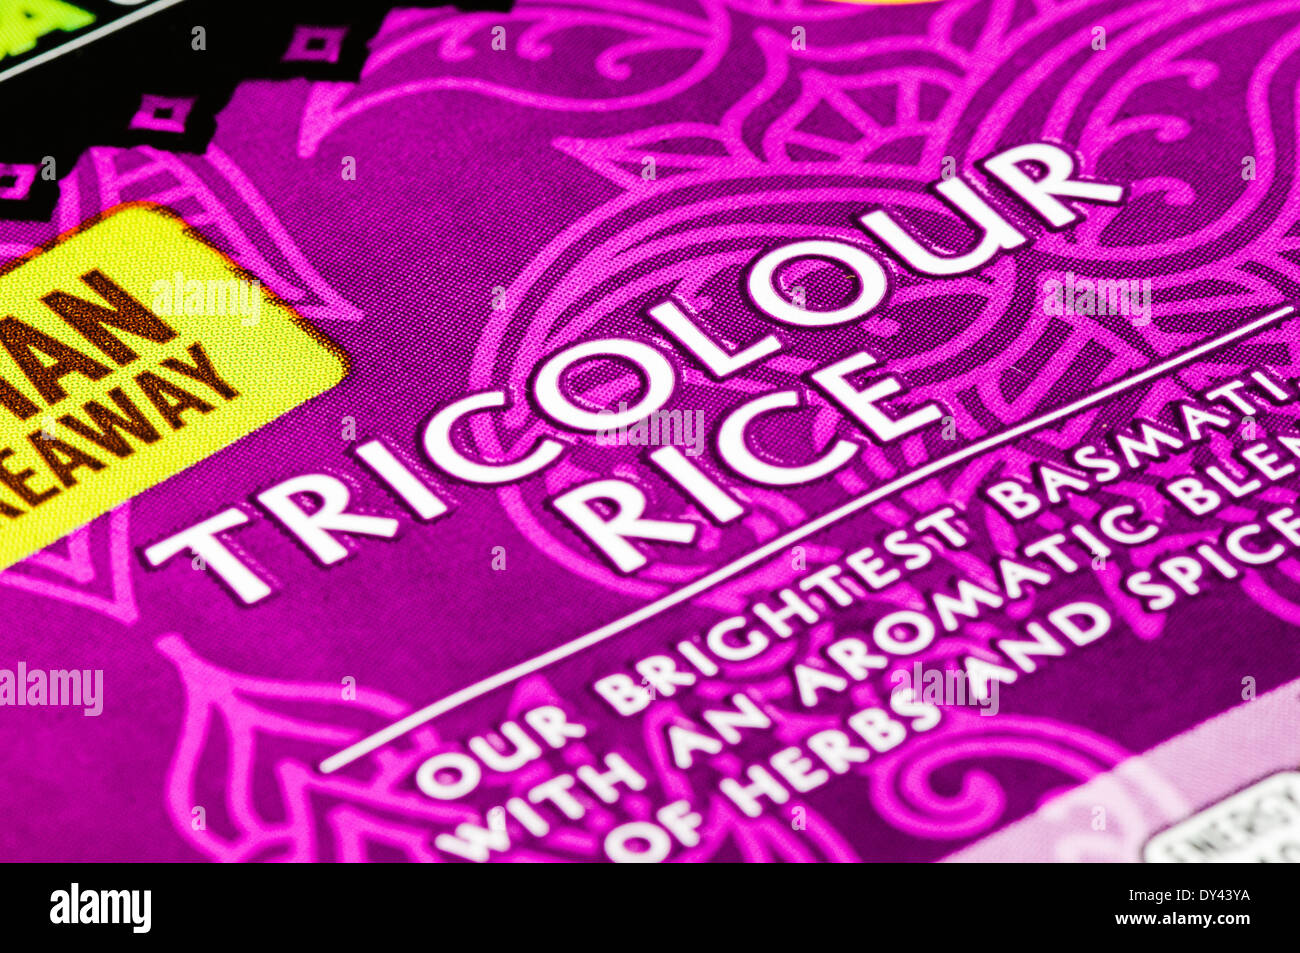 Packaging of Tricolour Rice - Stock Image